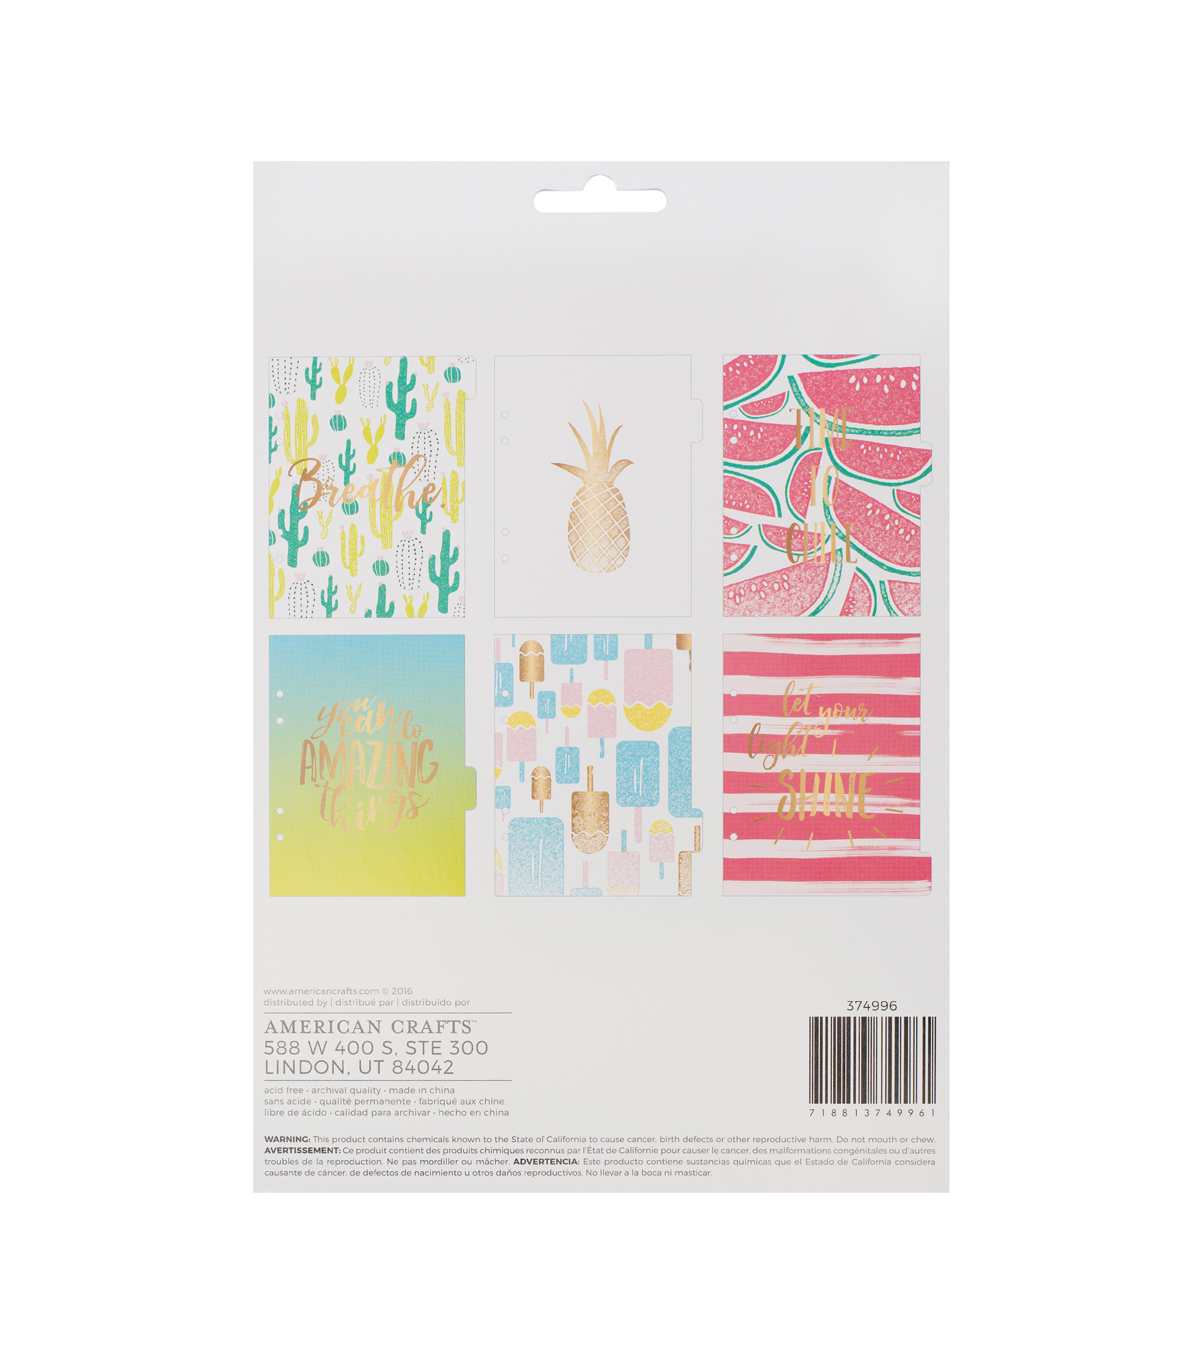 American Crafts 6 Pack Memory Planner Tabbed Dividers